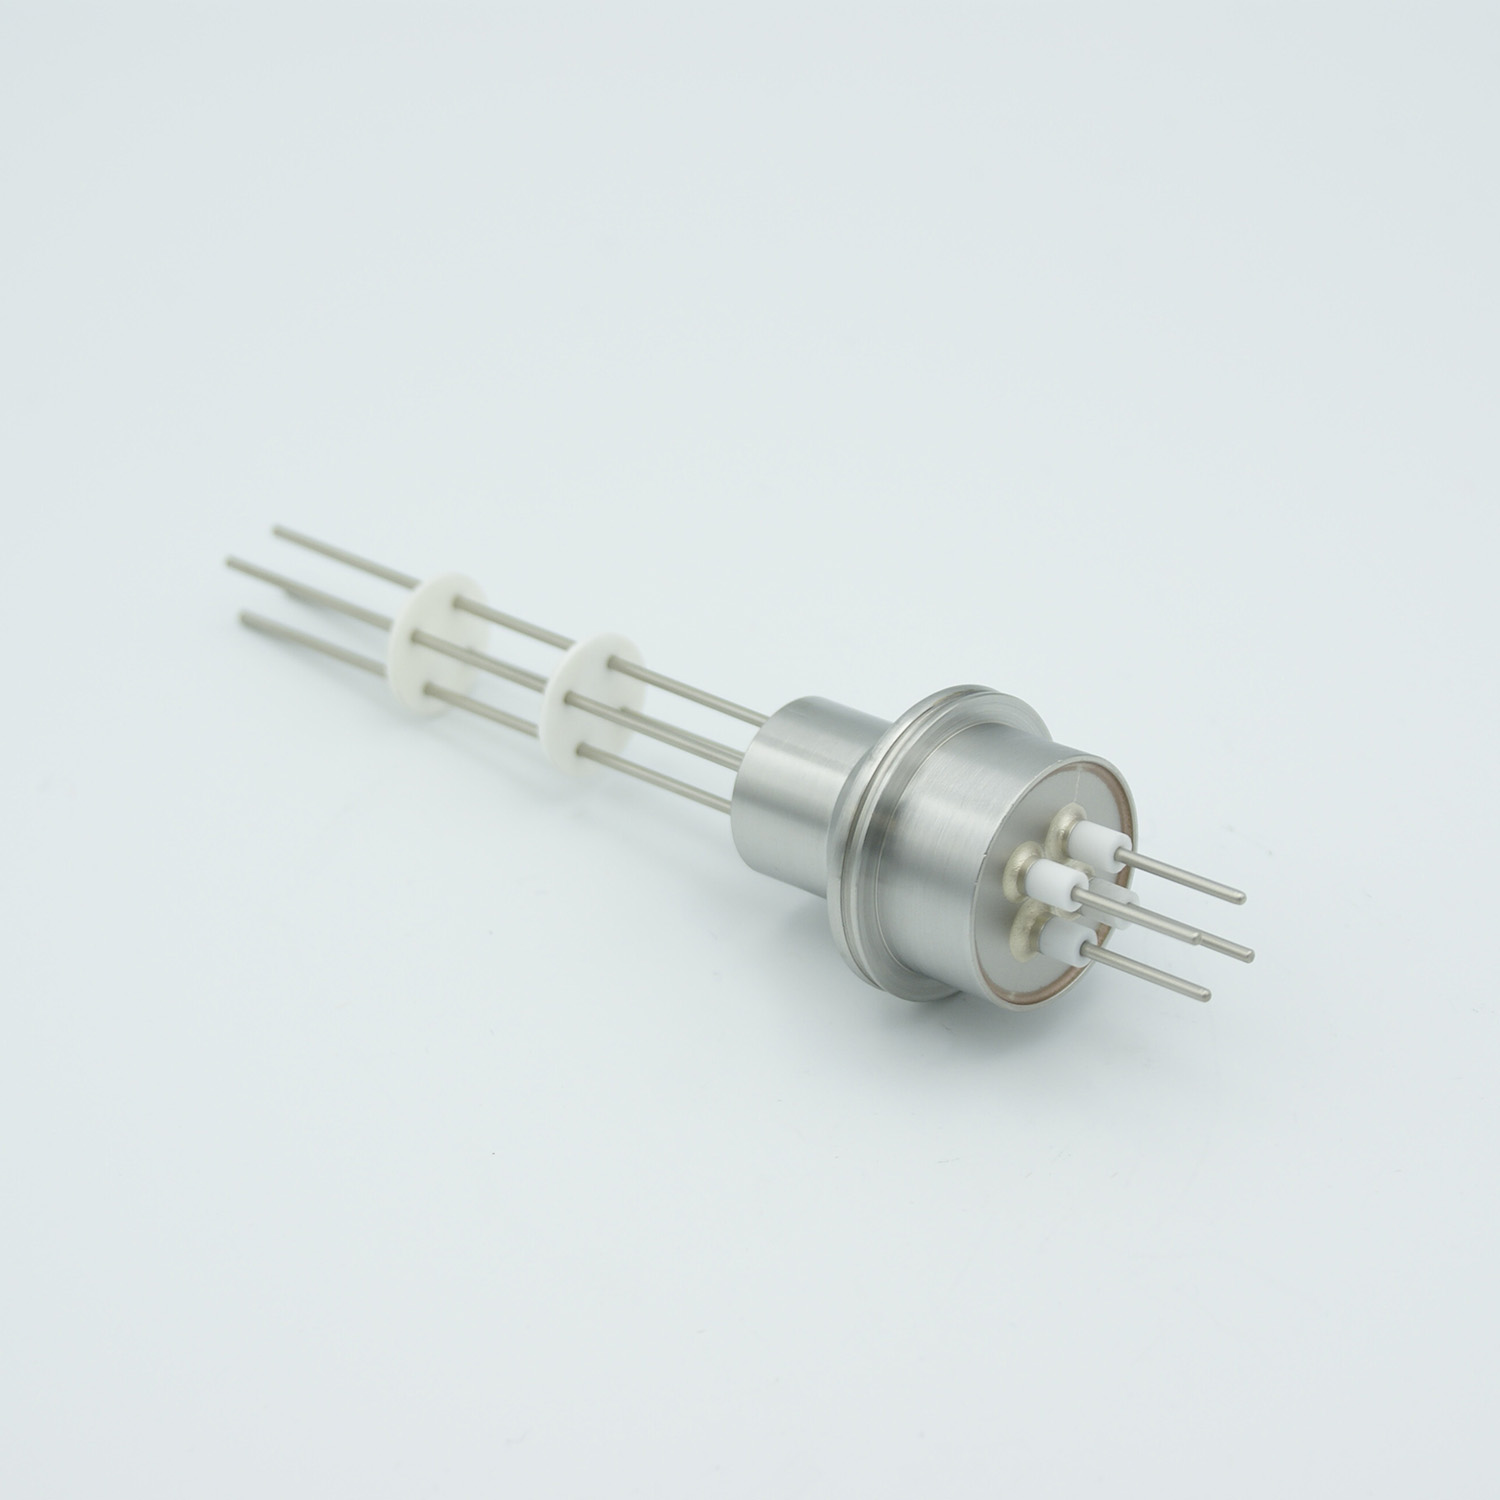 6 pin feedthrough 2000Volt / 10 Amp. Alumel conductor, weld fitting